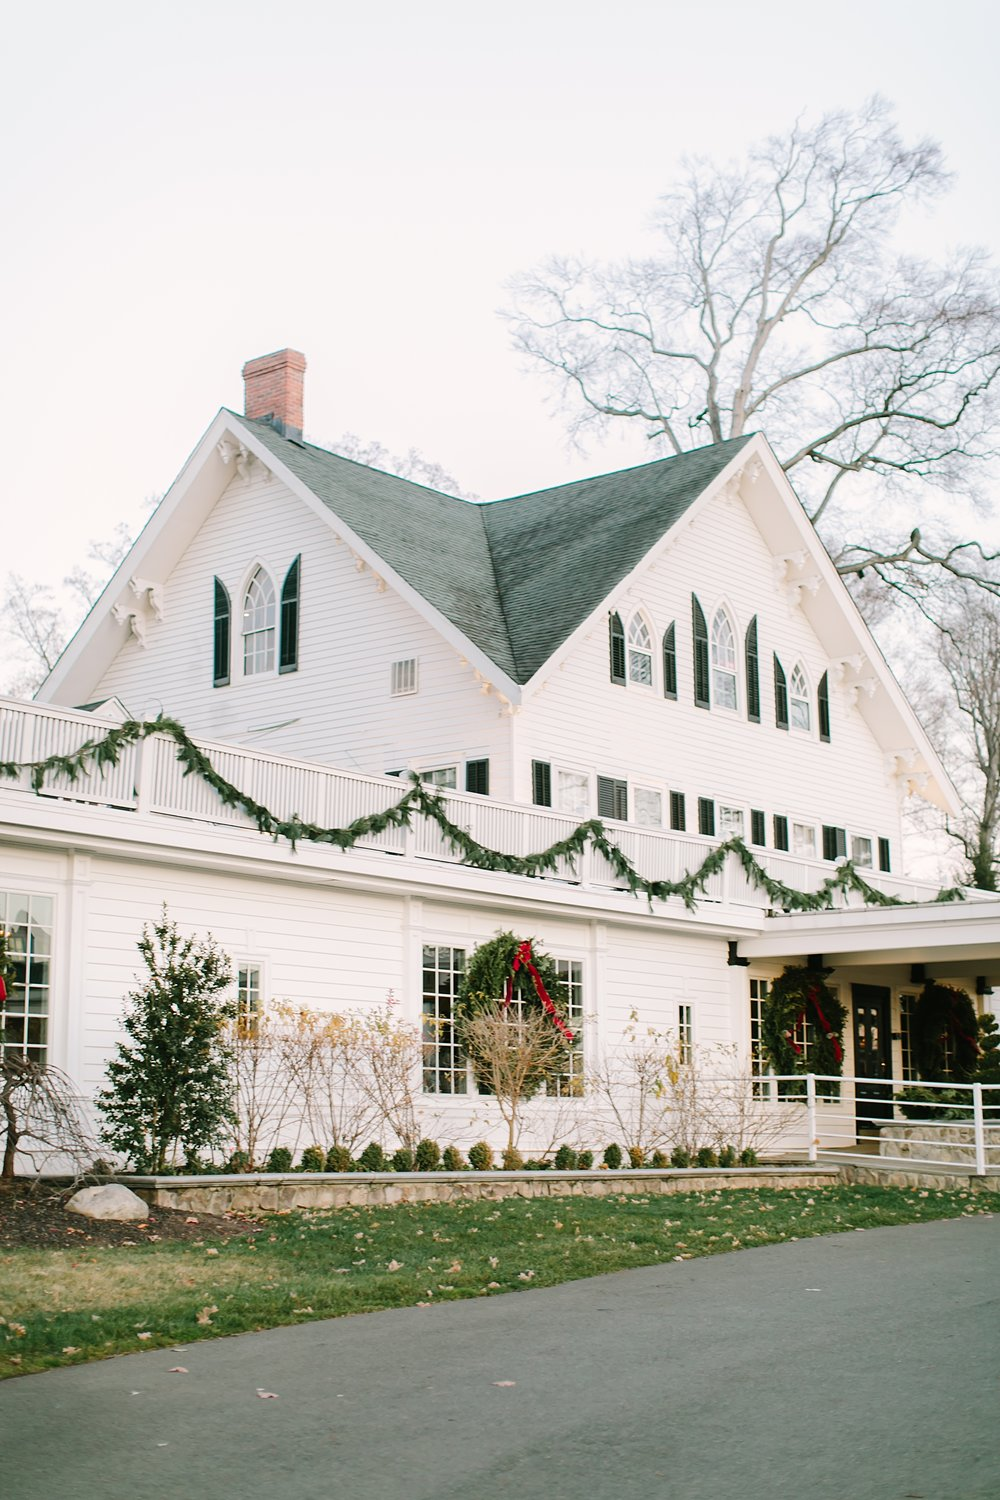 ryland_inn_new_jersey_winter_wedding_0016.jpg